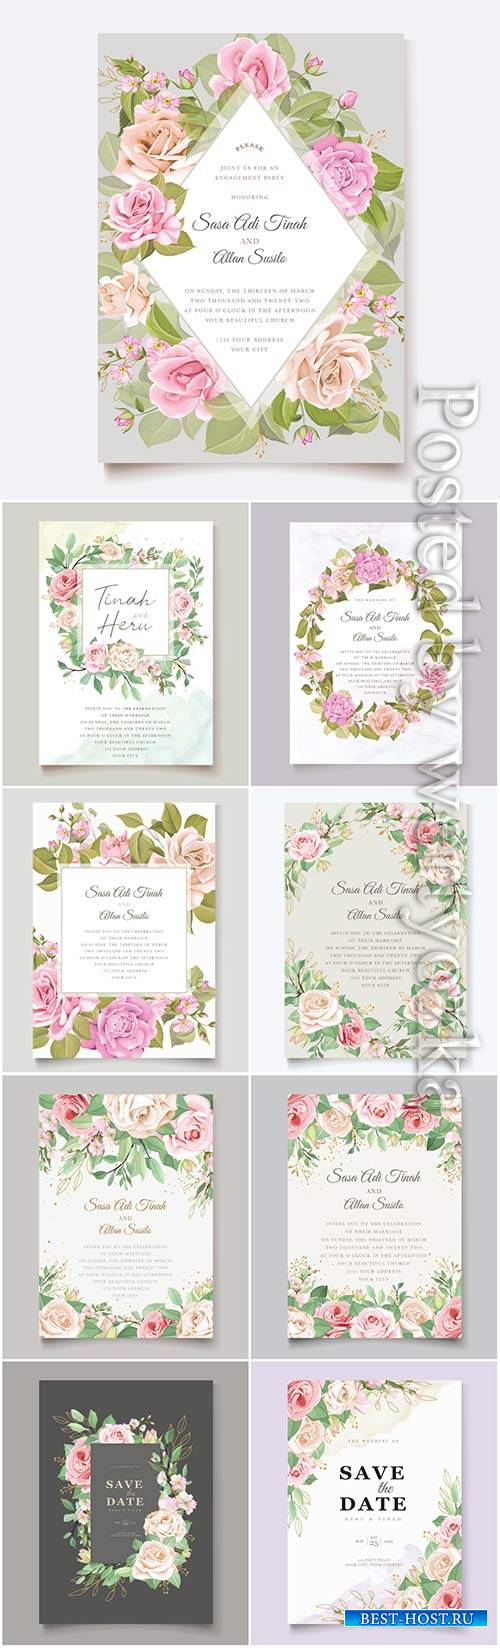 Wedding invitation cards with flowers in vector # 3